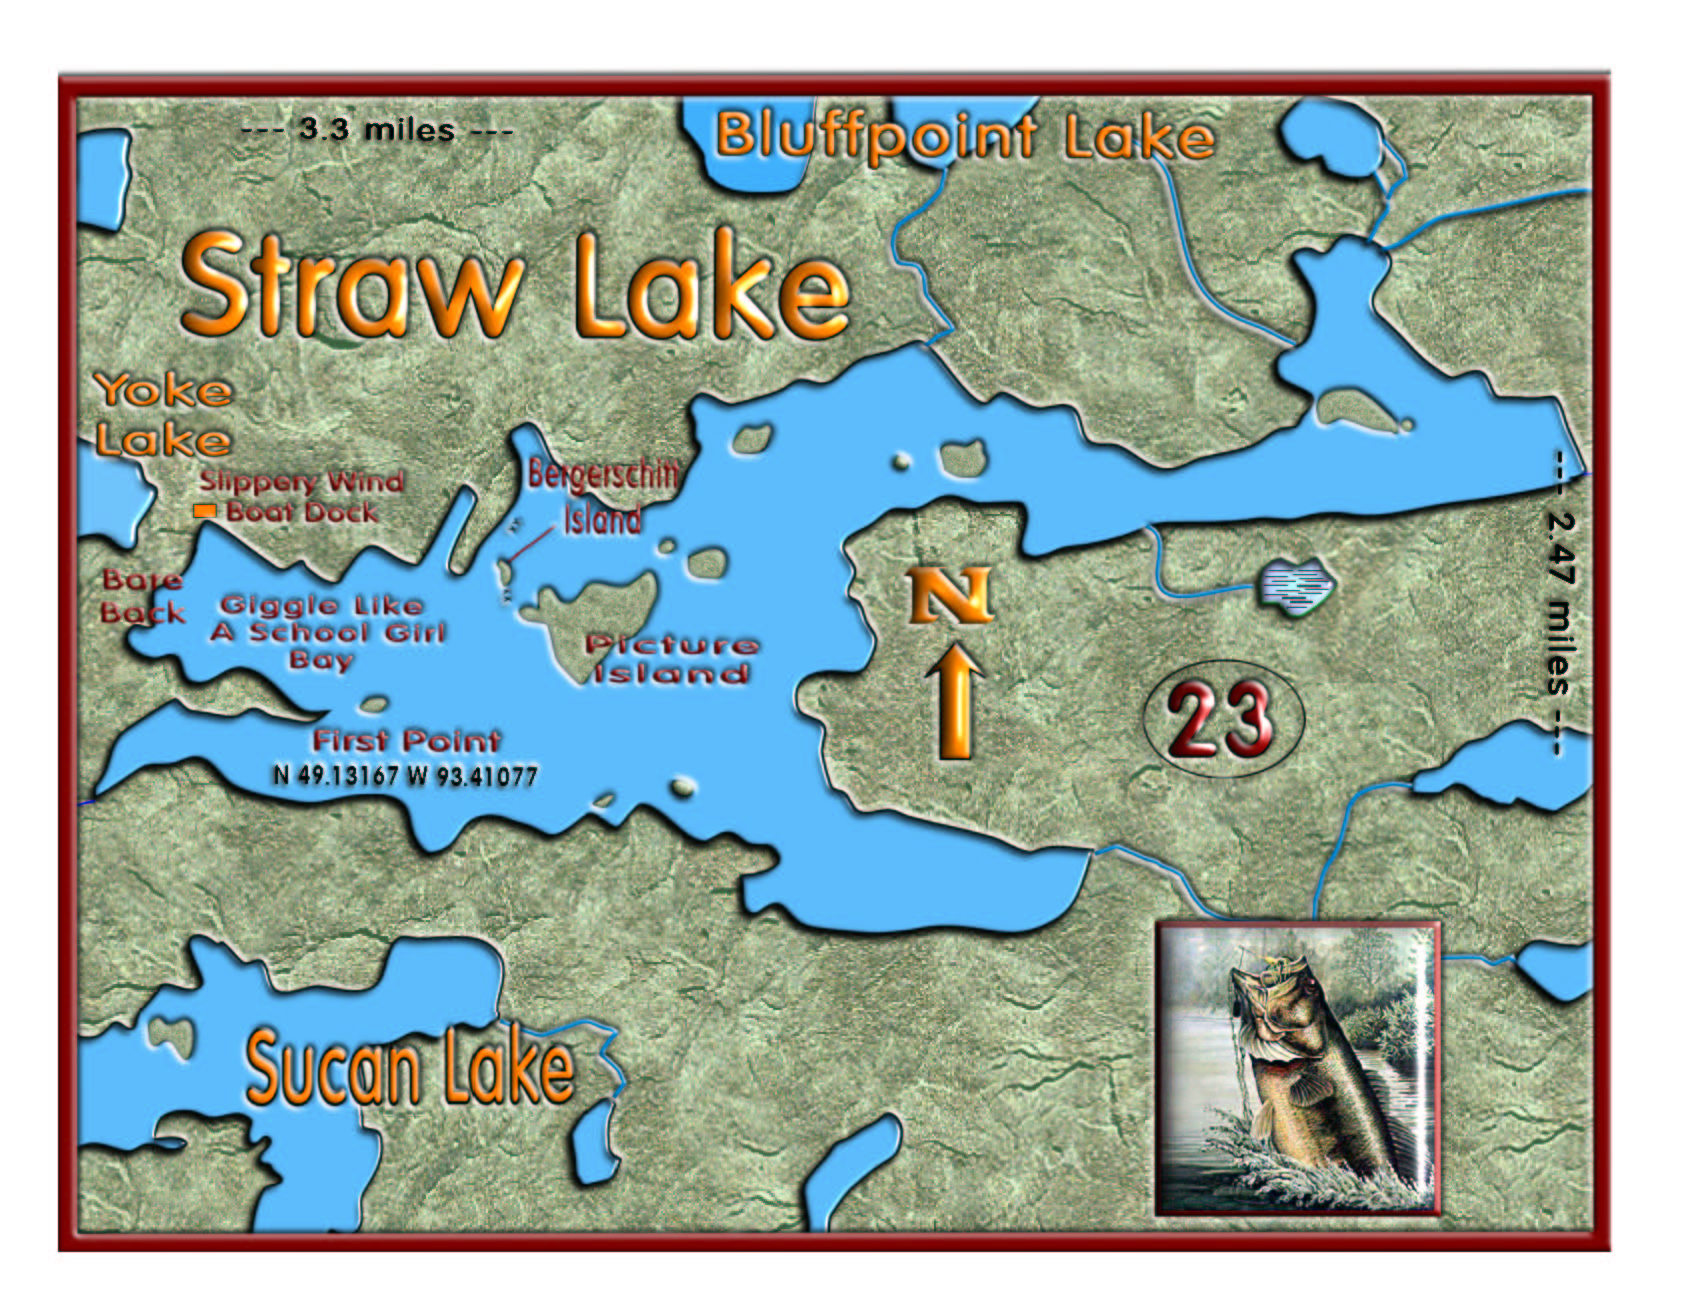 Straw Lake map